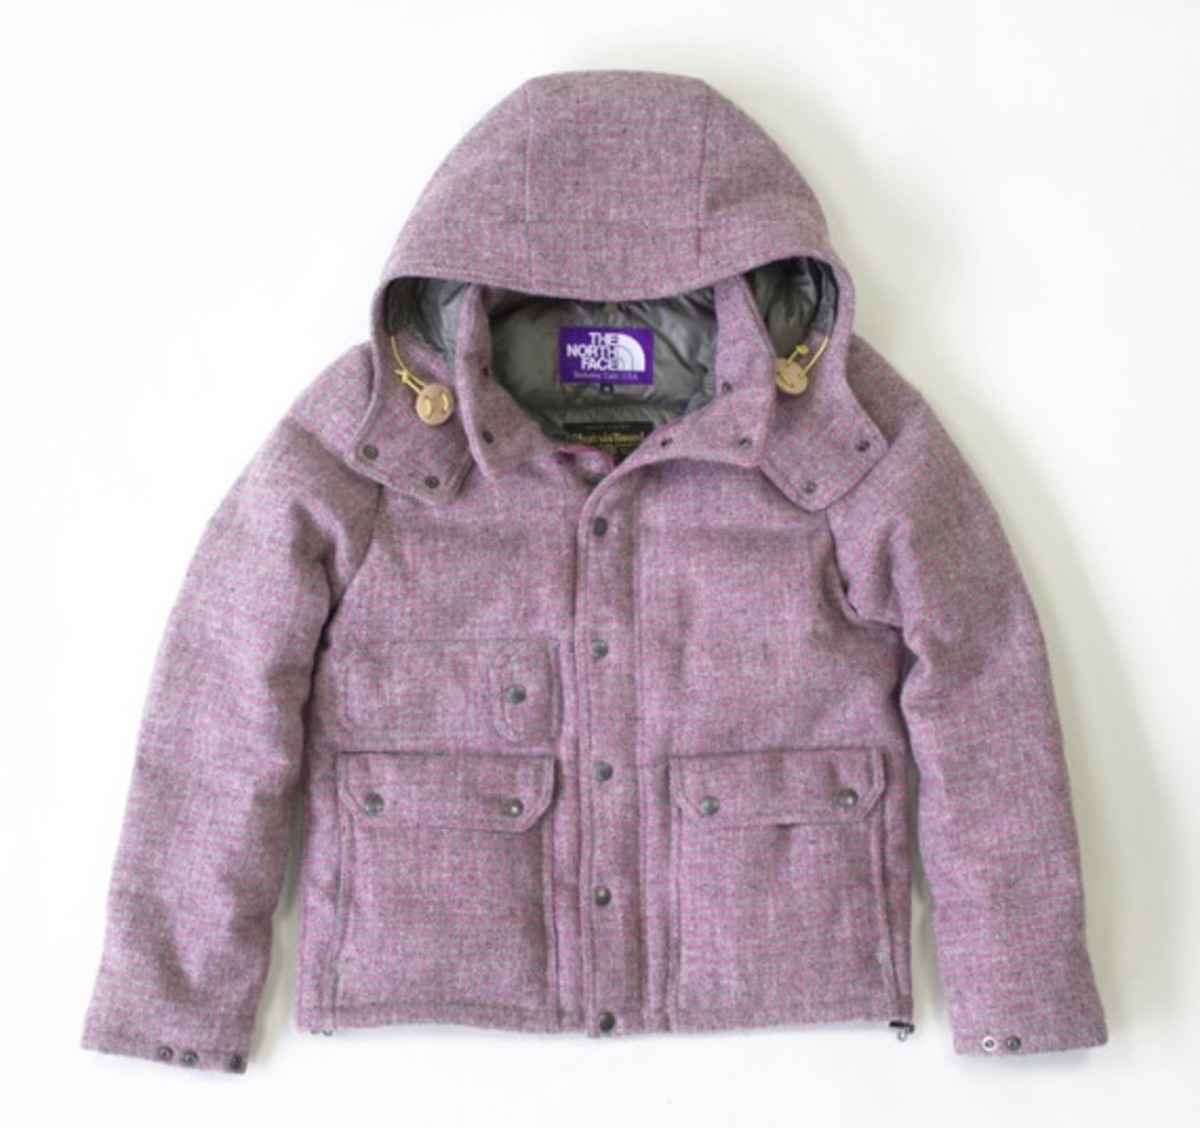 the-north-face-purple-label-harris-tweed-03